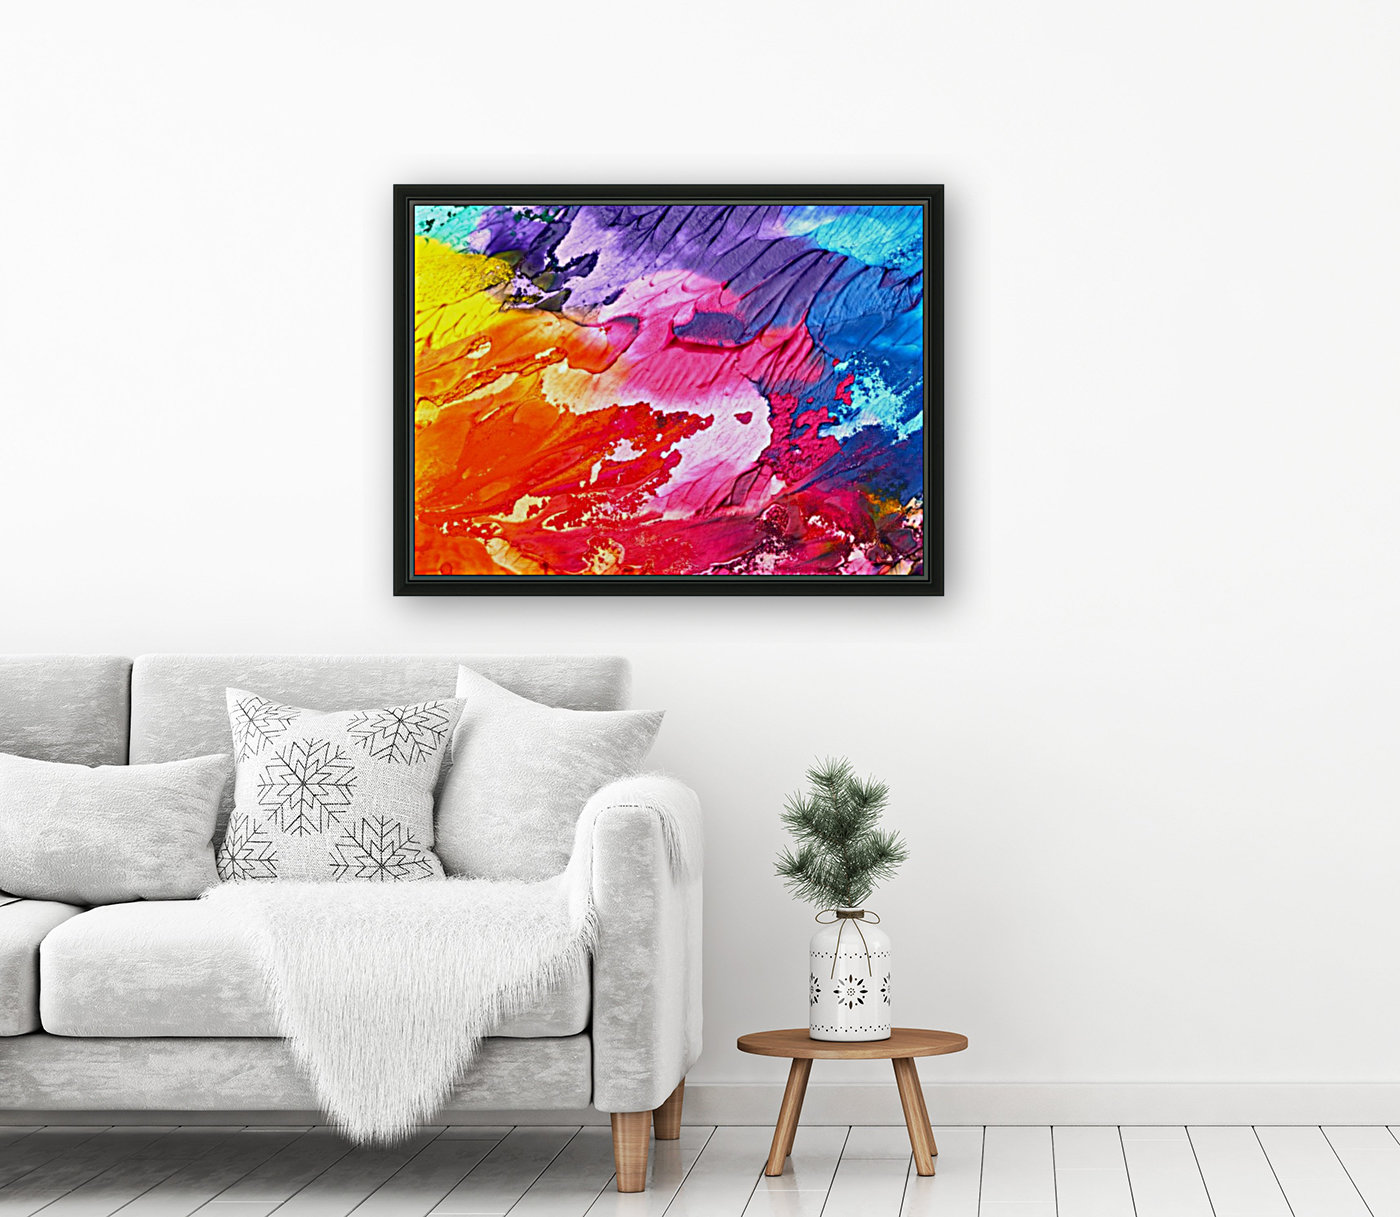 abstract, art, background, paint, texture, colorful, red, color, blue, watercolor, design, canvas, artistic, yellow, blot,  Art